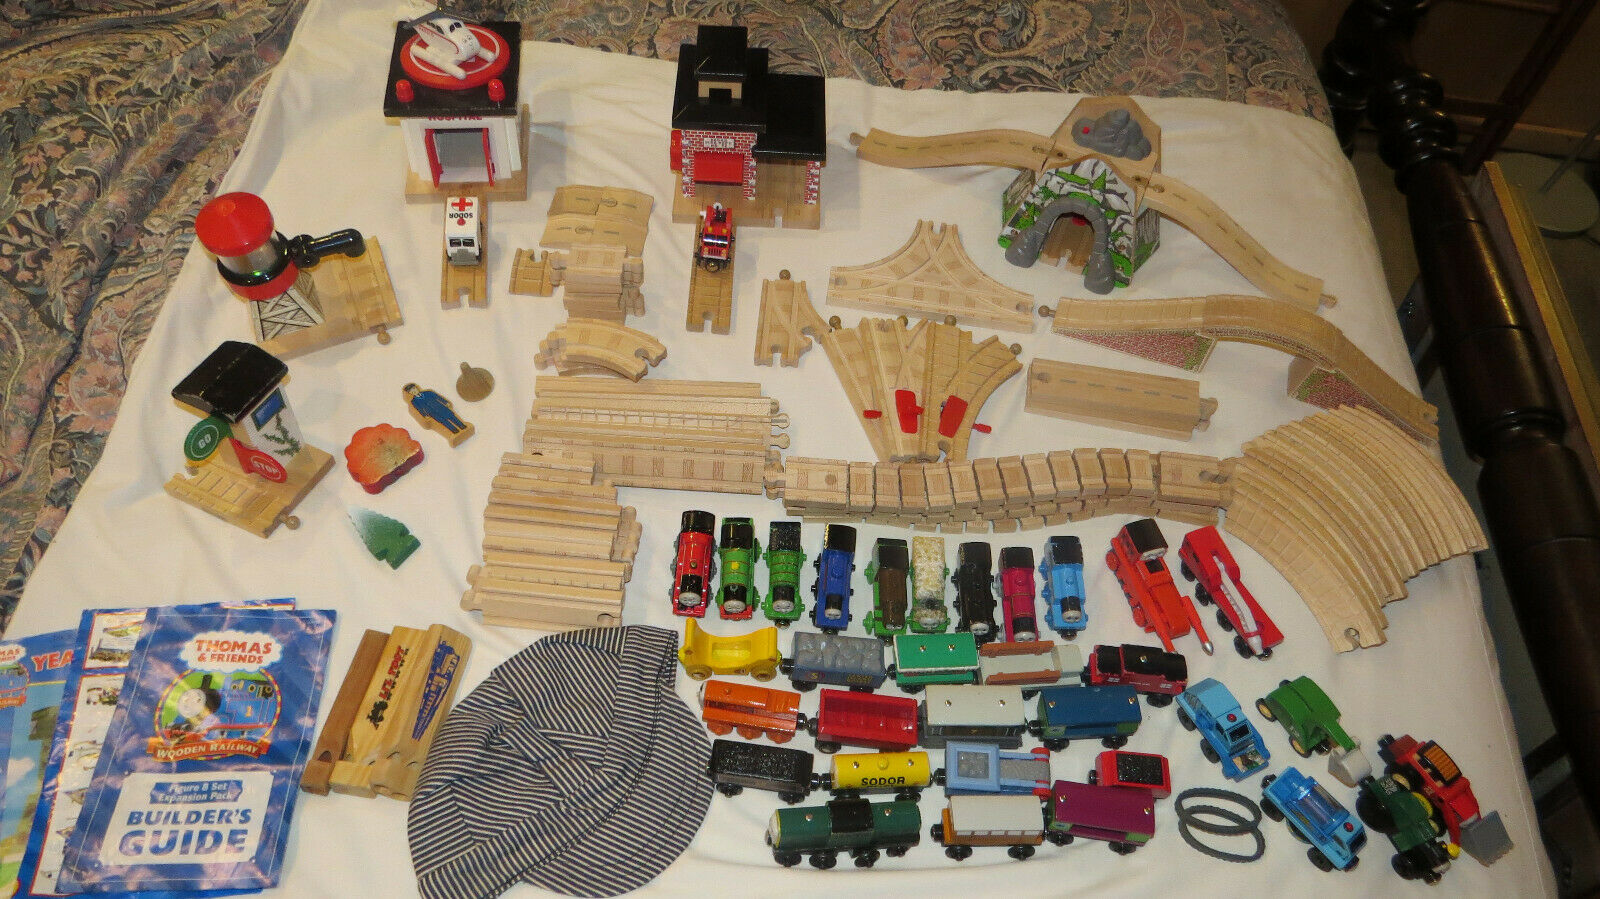 Thomas Wooden Railway Set, Accessories, Track, Engines, Cars, Buildings